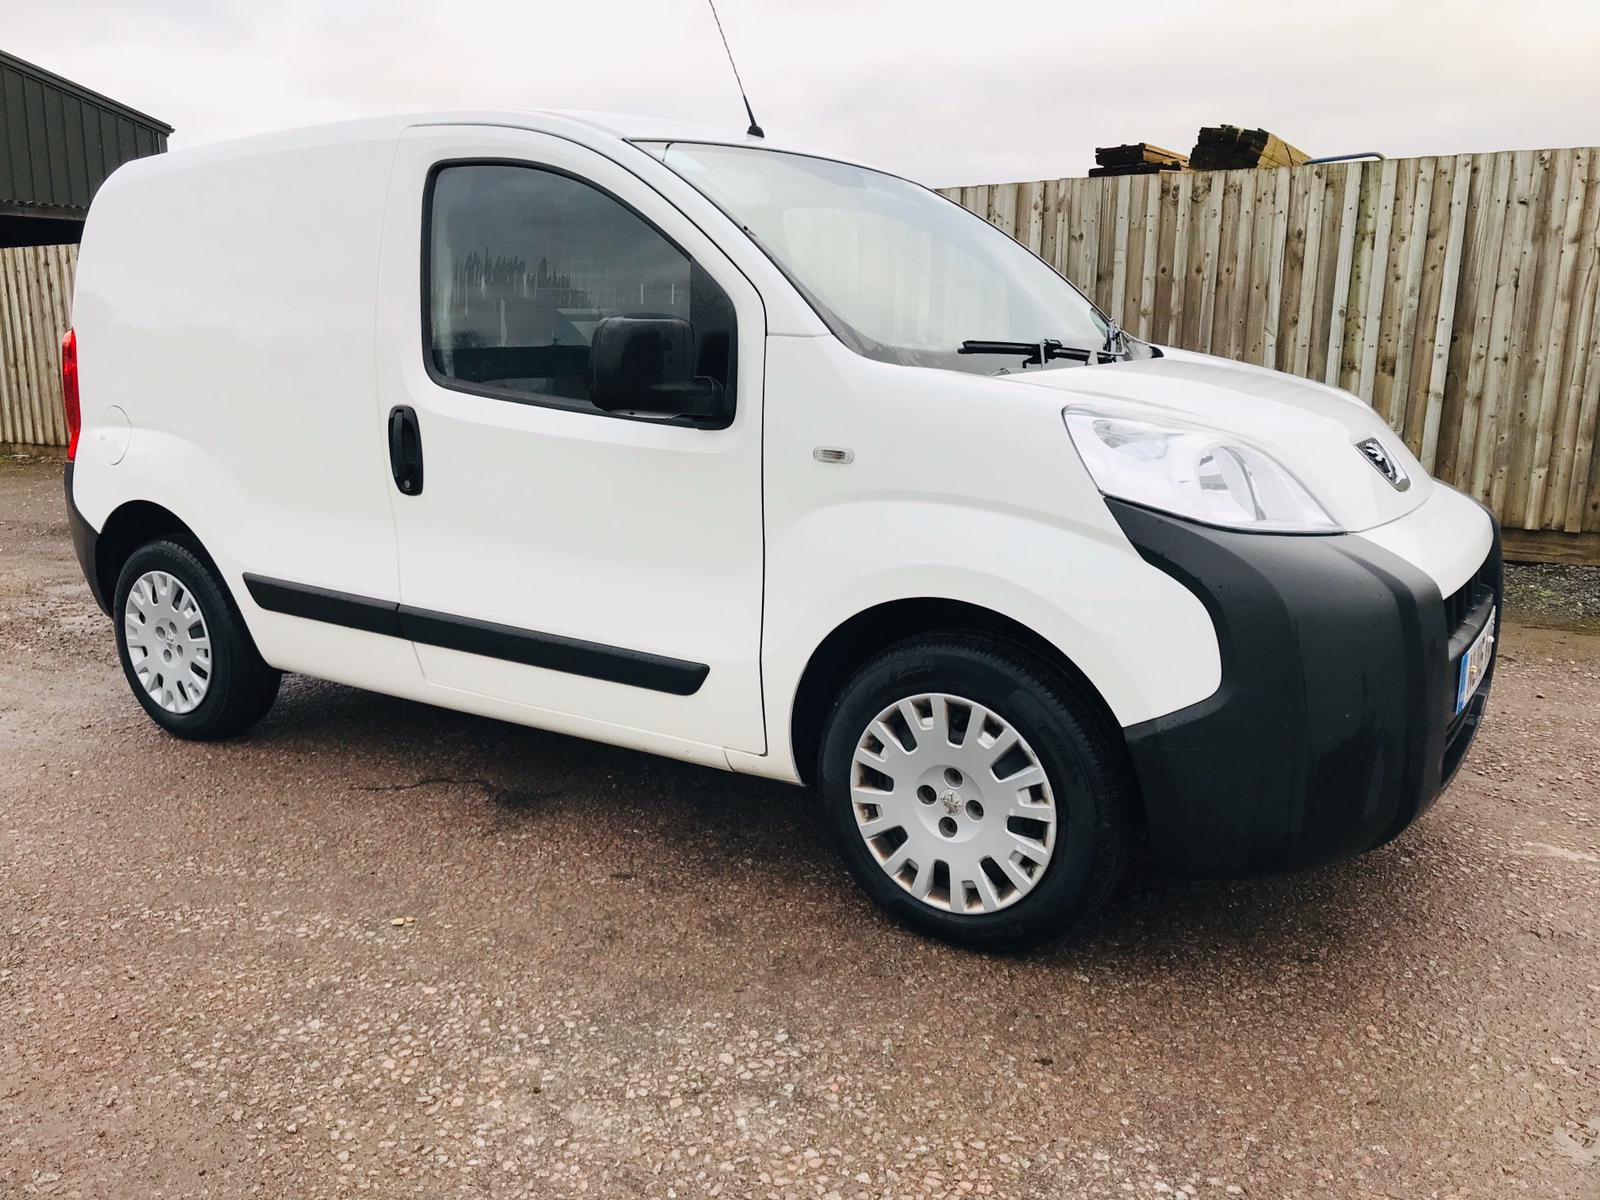 """(ON SALE) PEUGEOT BIPPER 1.3""""HDI"""" PROFESSIONAL - 2016 MODEL - 1 OWNER - FSH - AIR CON - SLD - Image 5 of 13"""